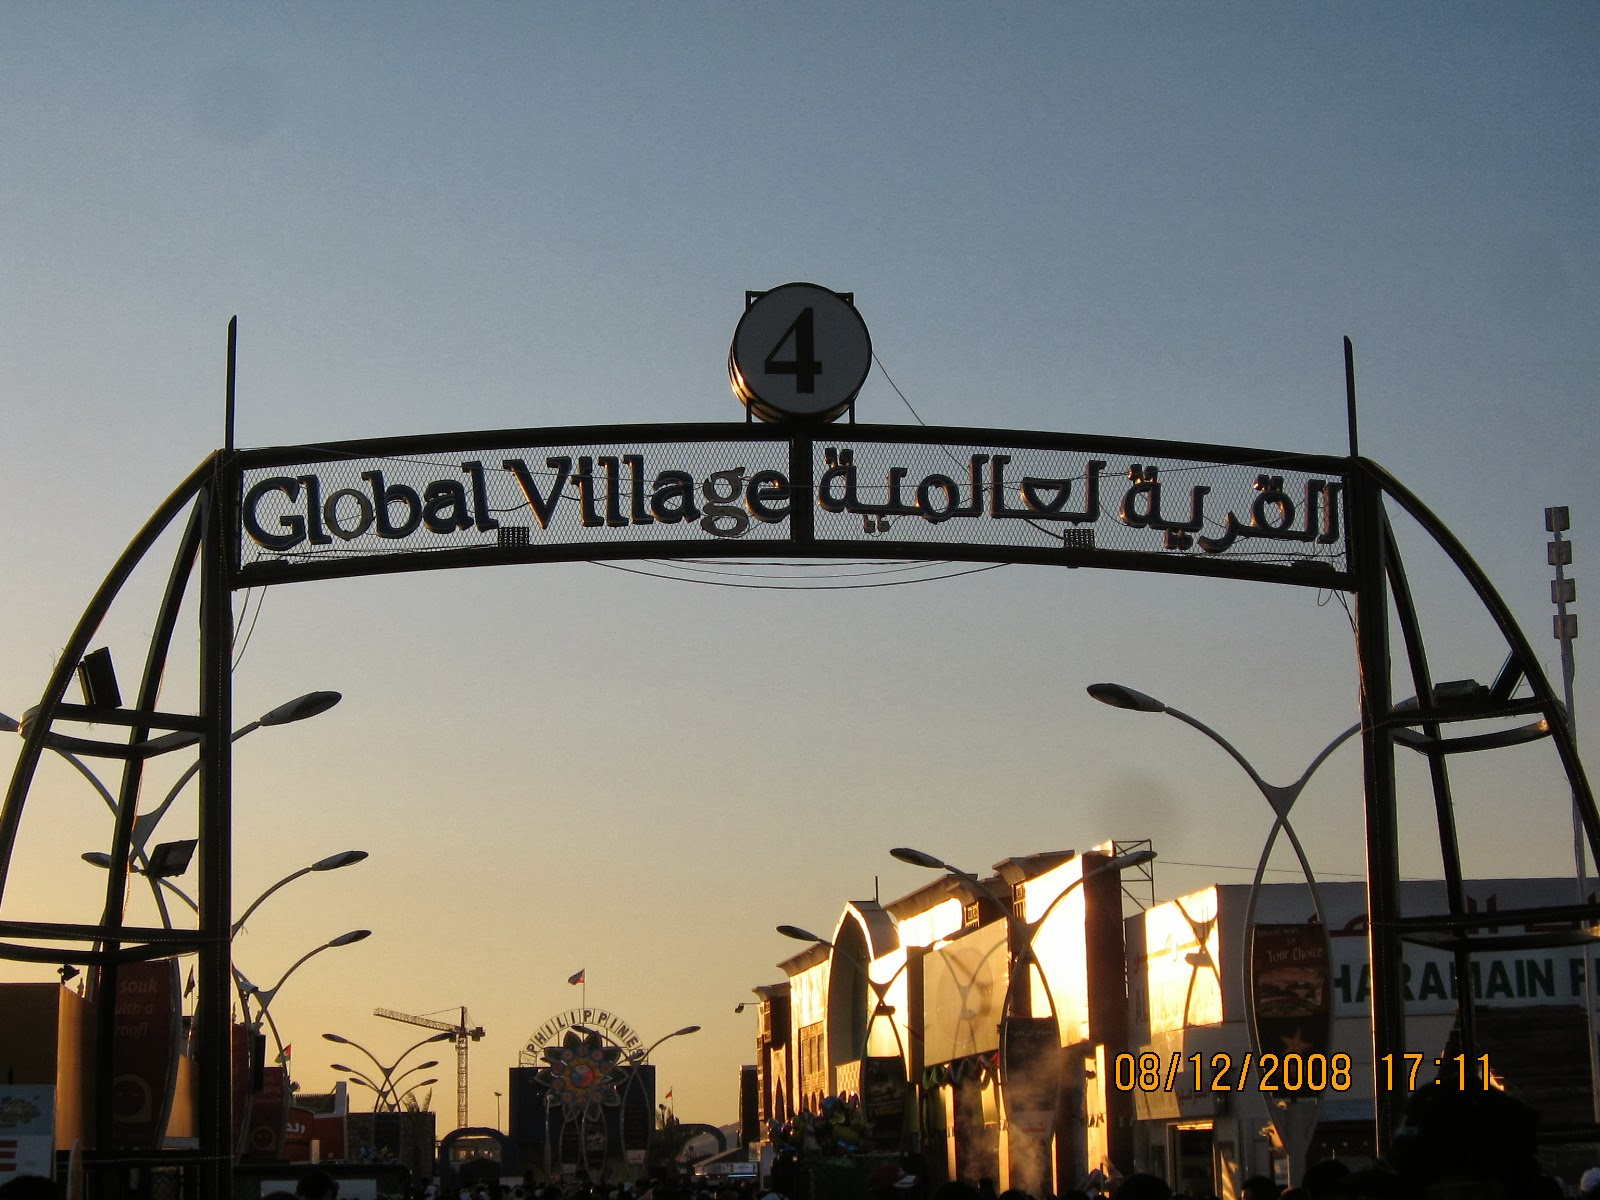 world as a global village essay The tools you need to write a quality essay or that the world is moving towards a global village' and in terms use of the global village, and promote global.